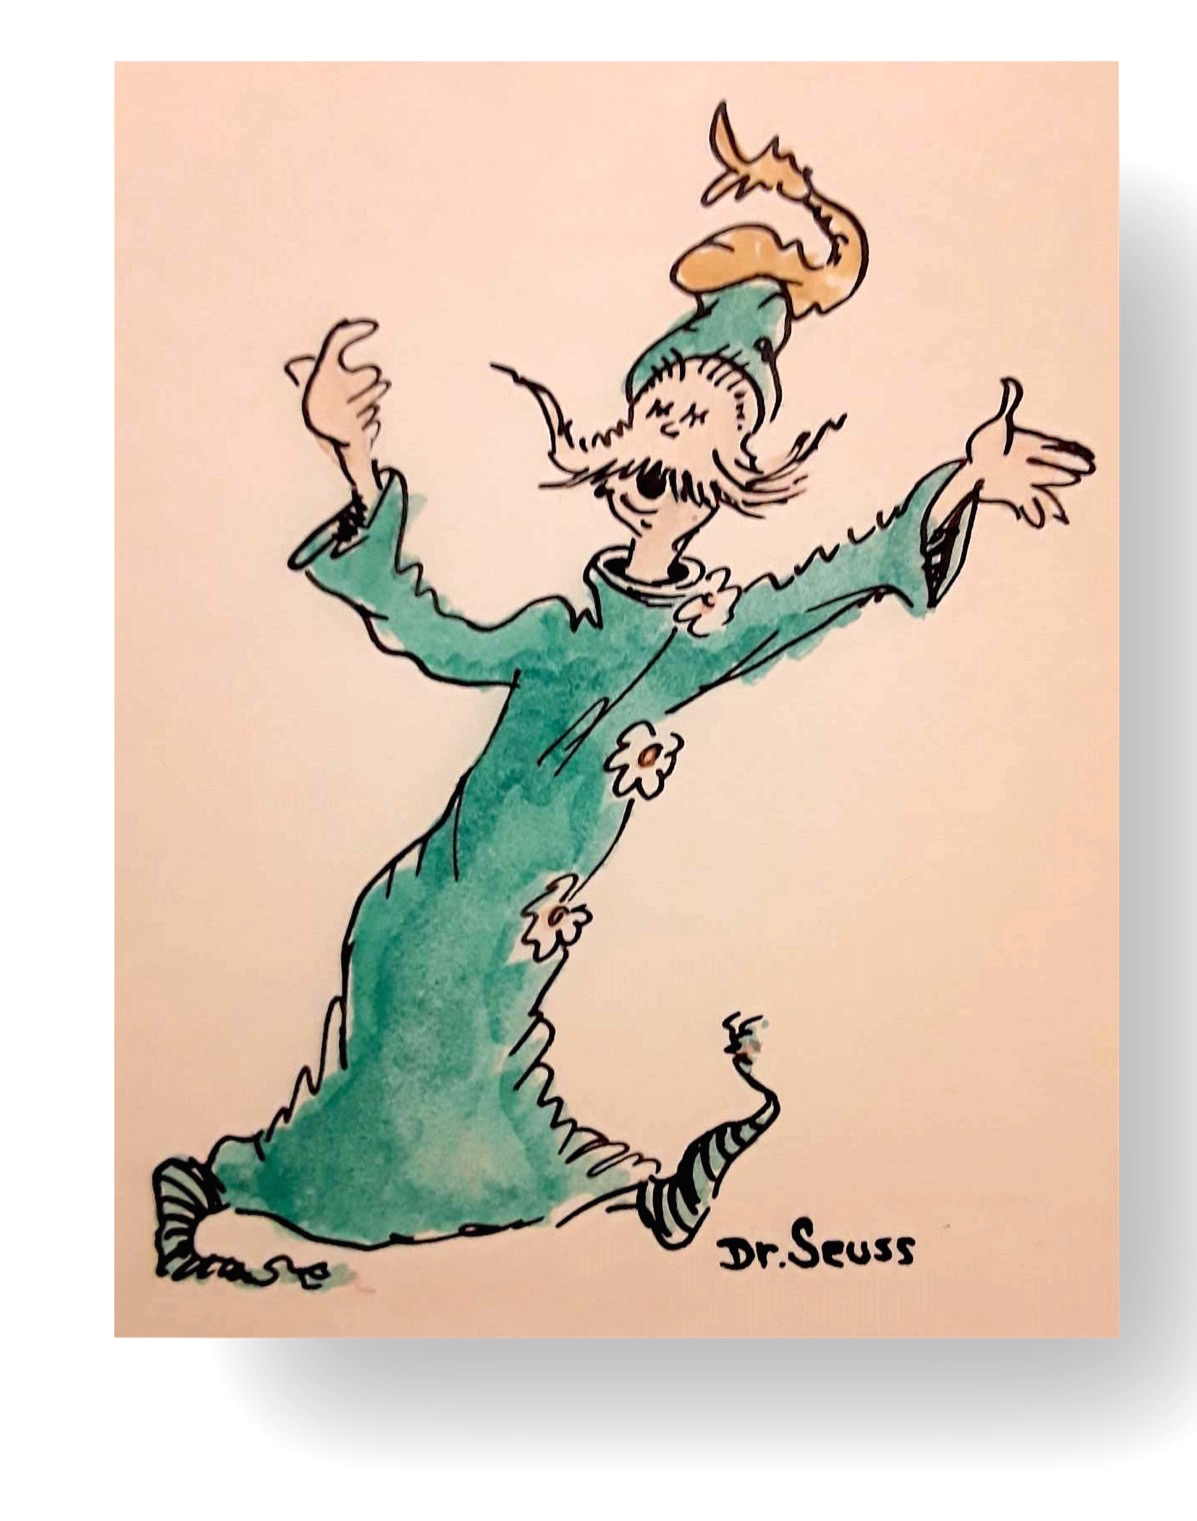 "Mr Greene, Chants his Merry Theme : ""Come along there's so much of the world yet to be Seen""  Dr. Seuss Original illustration  Ink and watercolor on paper 6.5 x 7 inches Circa mid 1960's Signed Dr. Seuss lower right  INQUIRE"